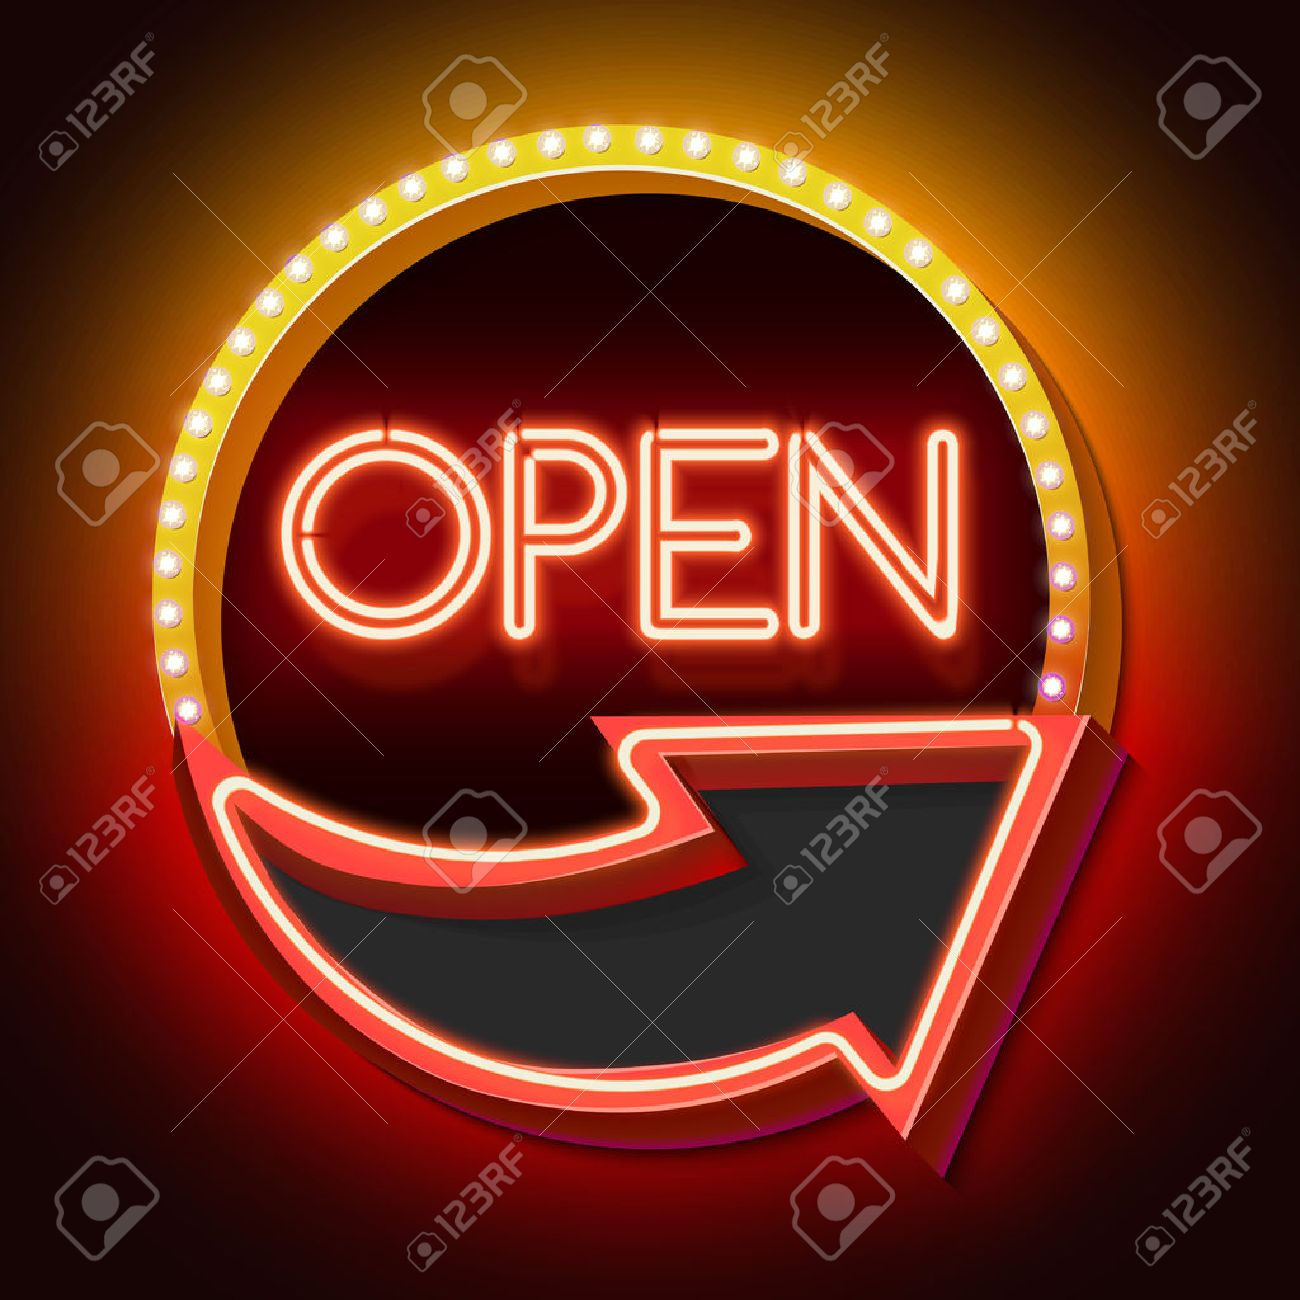 Retro sign that says openly and neon arrow. Neon red and yellow light falls on the black wall. 3D realistic vintage sign. Electric sign. Empty space for your text, publicity, promotion. Vector - 53228004